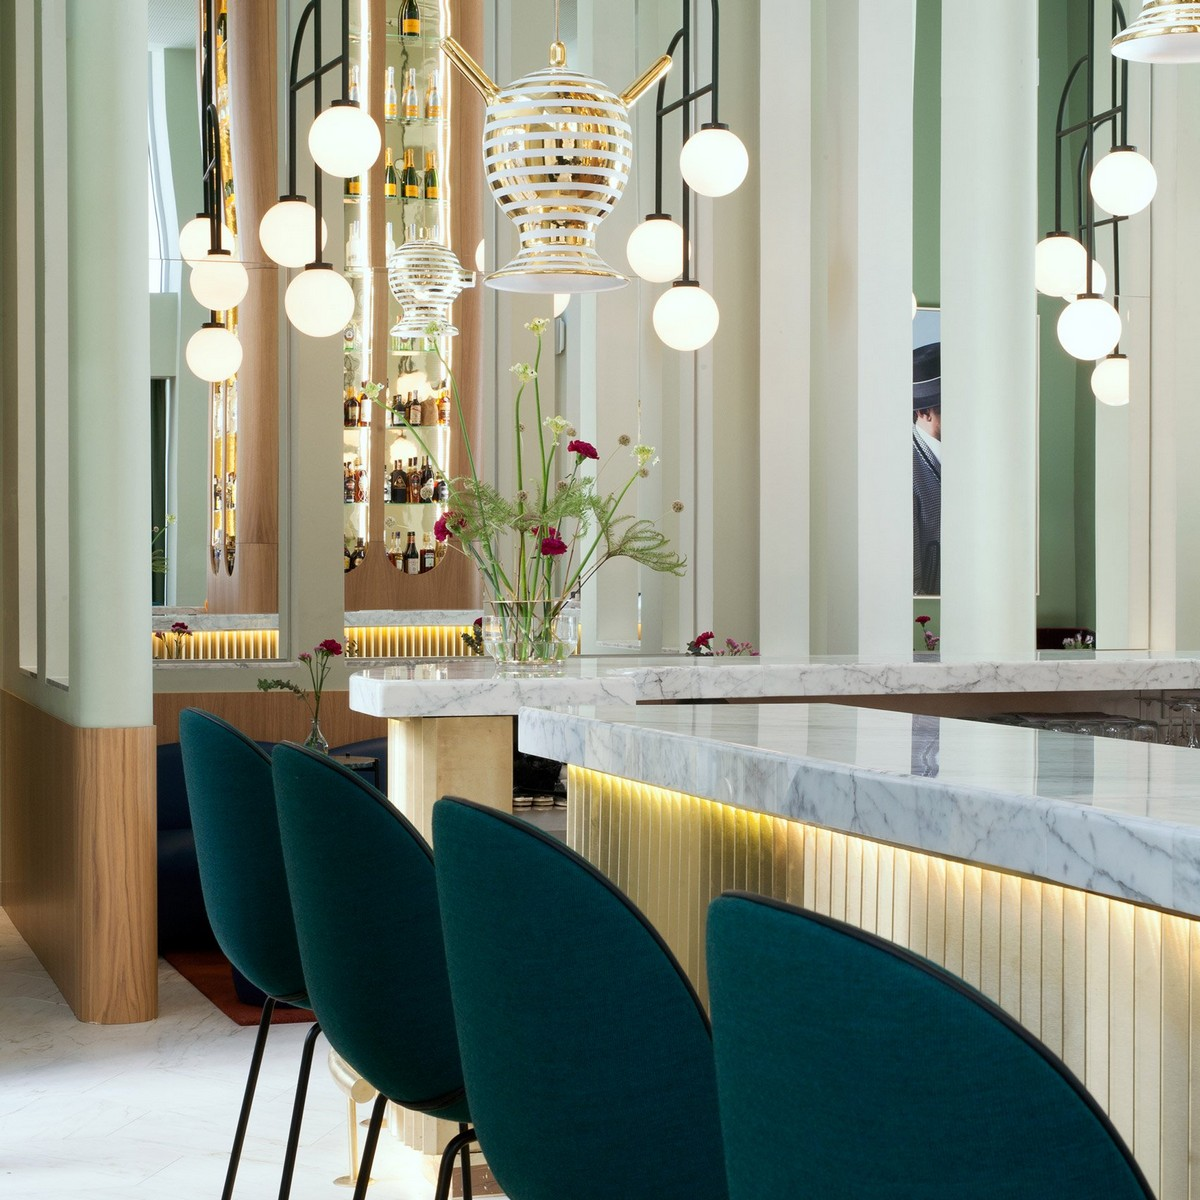 Top 10 Best Hotels of 2017: A Dezeen Selection | Thinking about next years vacation? We show you some awesome locations. #tophotels #hoteldesign #besthotels #luxuryhotels #traveldestinations #centertables best hotels Top 10 Best Hotels of 2017: A Dezeen Selection jaime hayon barcelo torre de madrid hotel spain interiors dezeen sq d